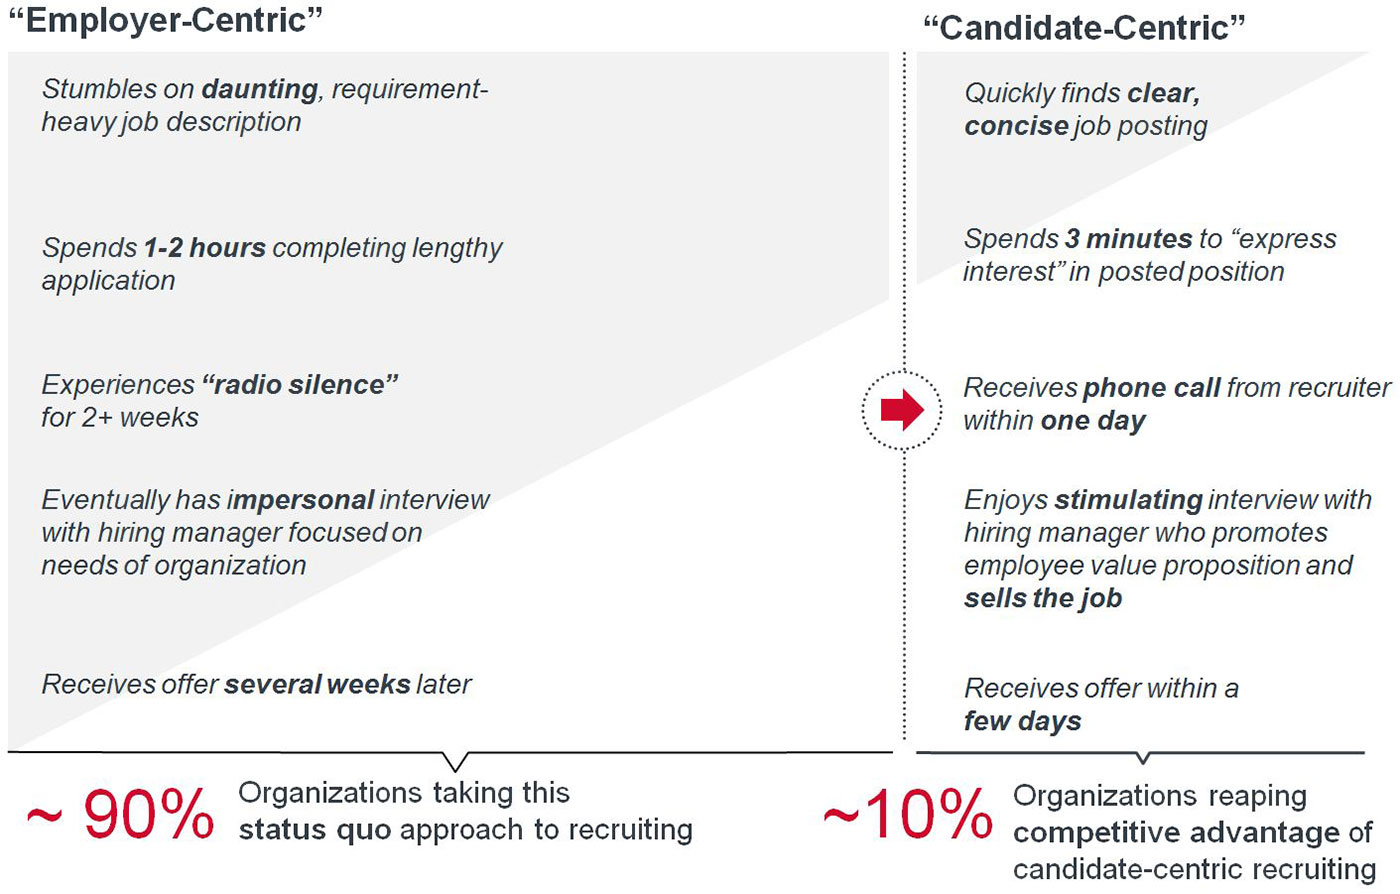 employer-centric vs. candidate-centric recruiting